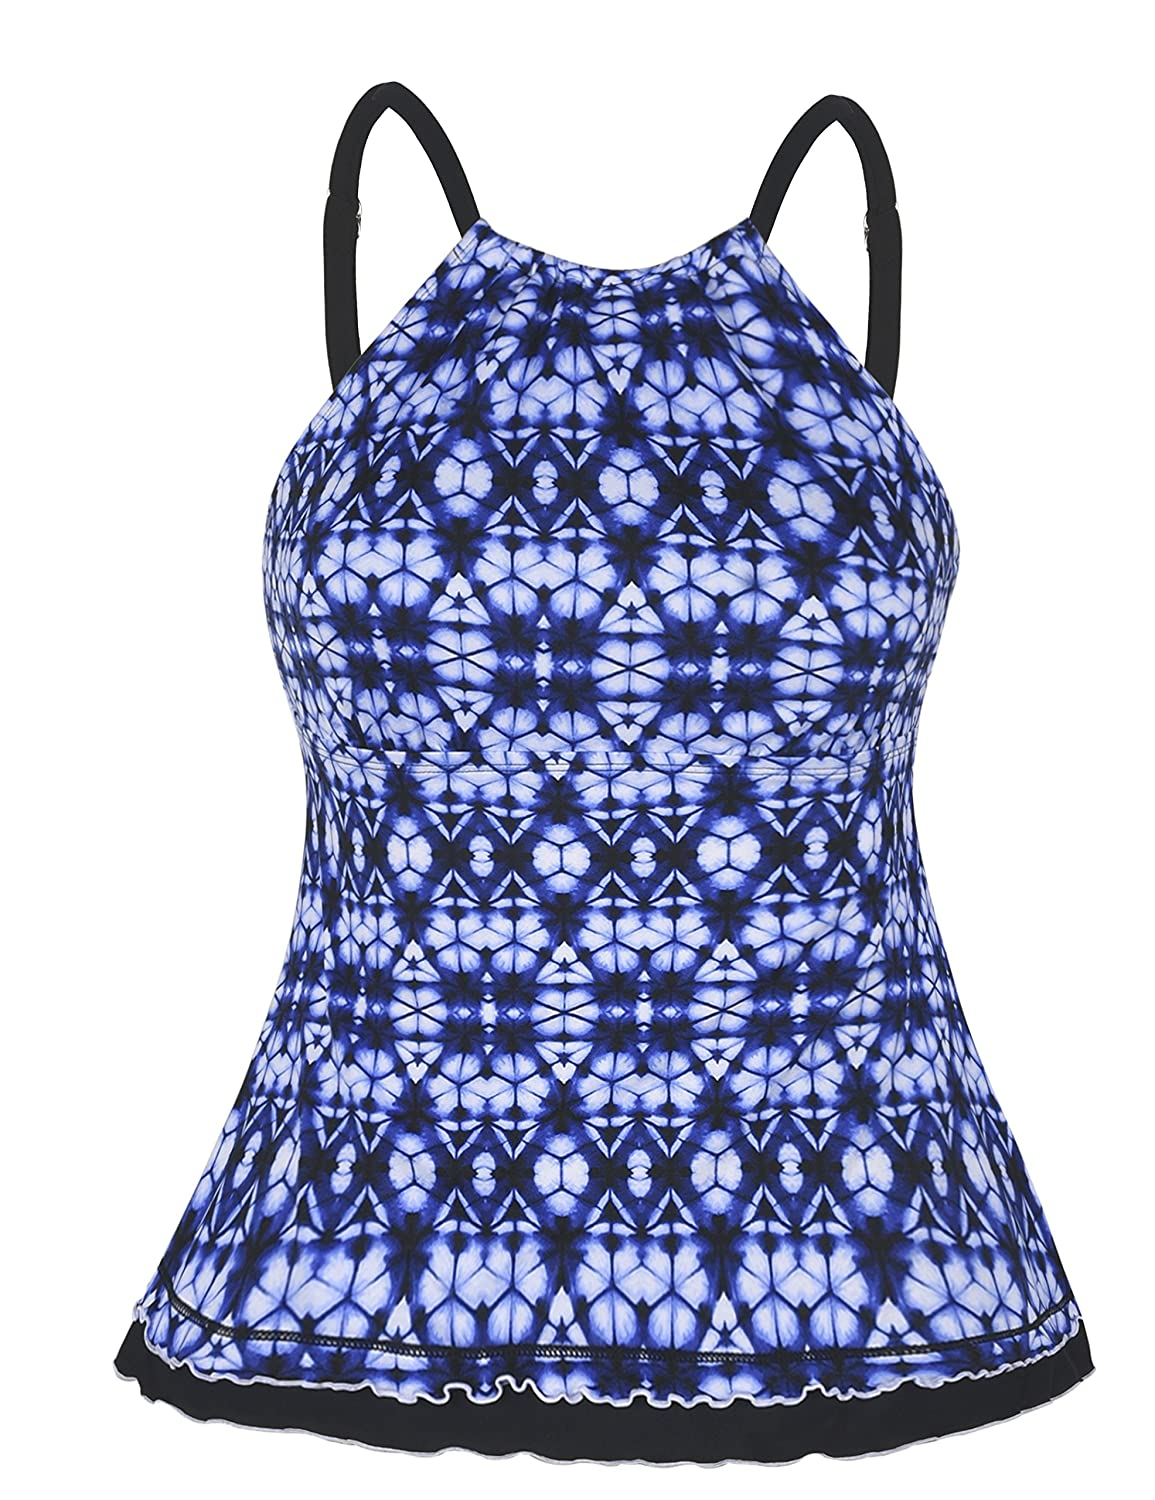 Firpearl Women's Swimsuit High Neck Ruffle Hem Tankini Swimwear Top